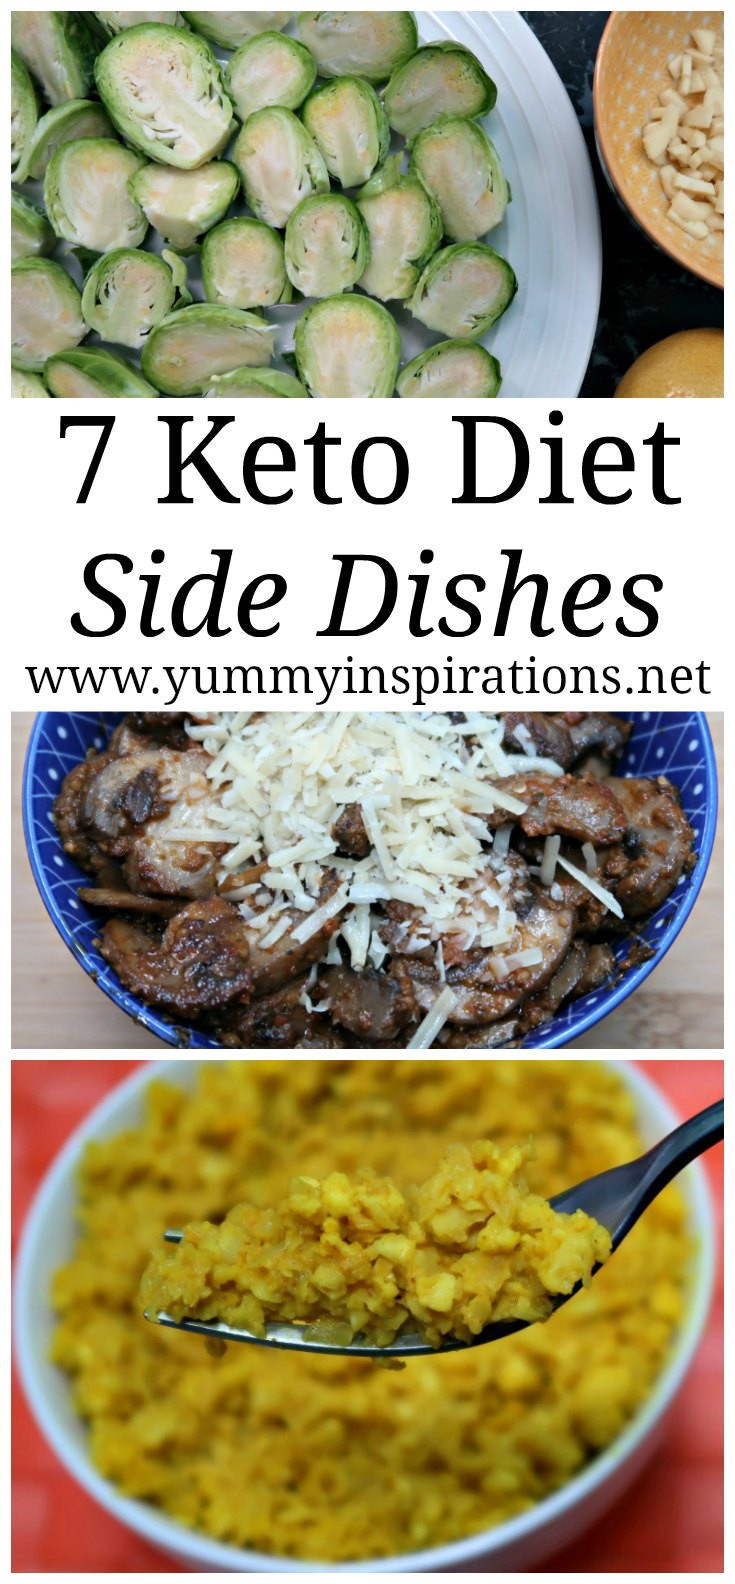 Keto Dinner Side Dishes  7 Keto Side Dishes Easy Low Carb Sides LCHF Recipes